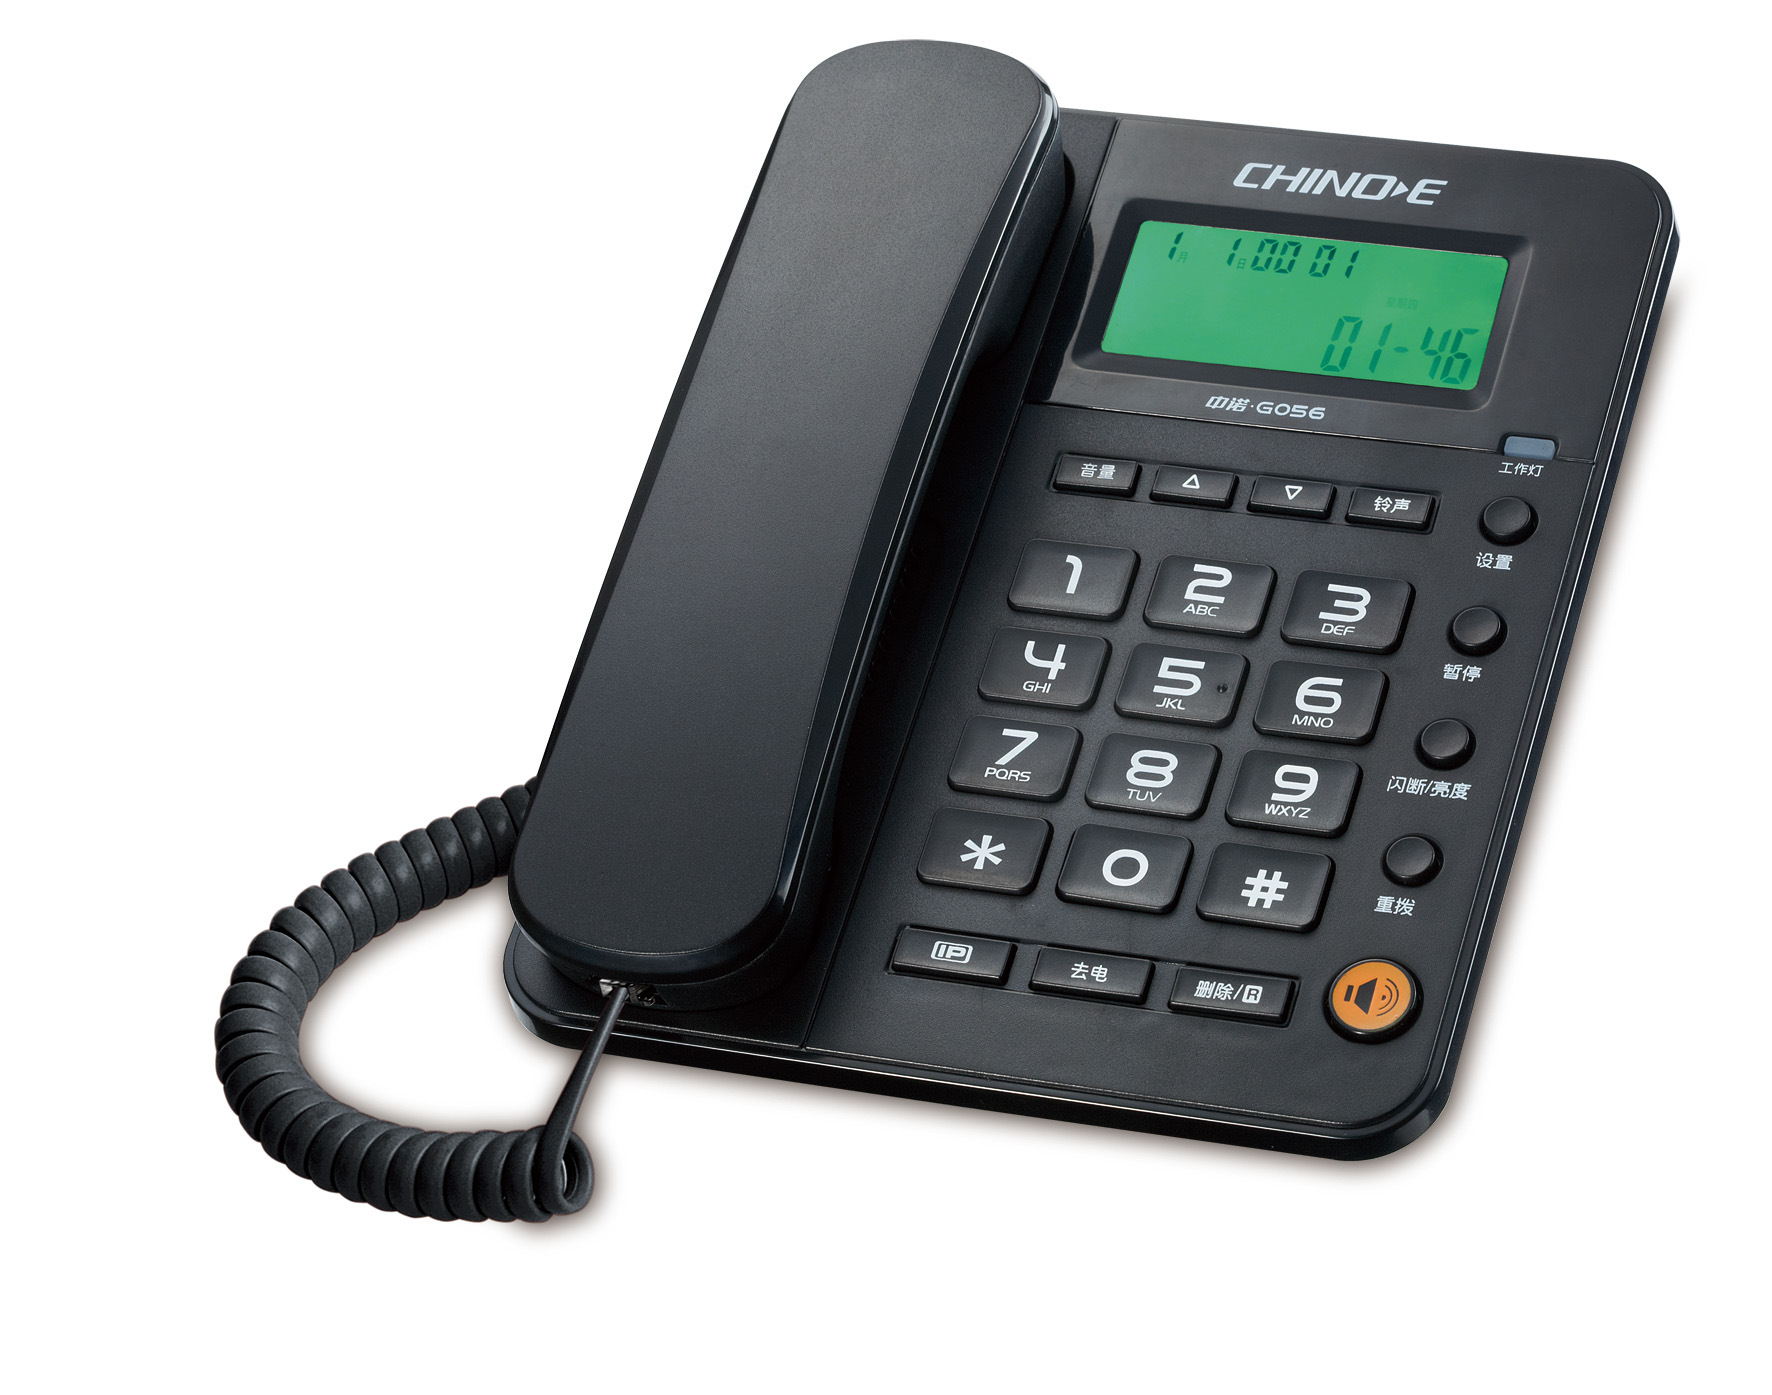 Caller ID Phone, Speaker Phone, Telephone, Office Phone